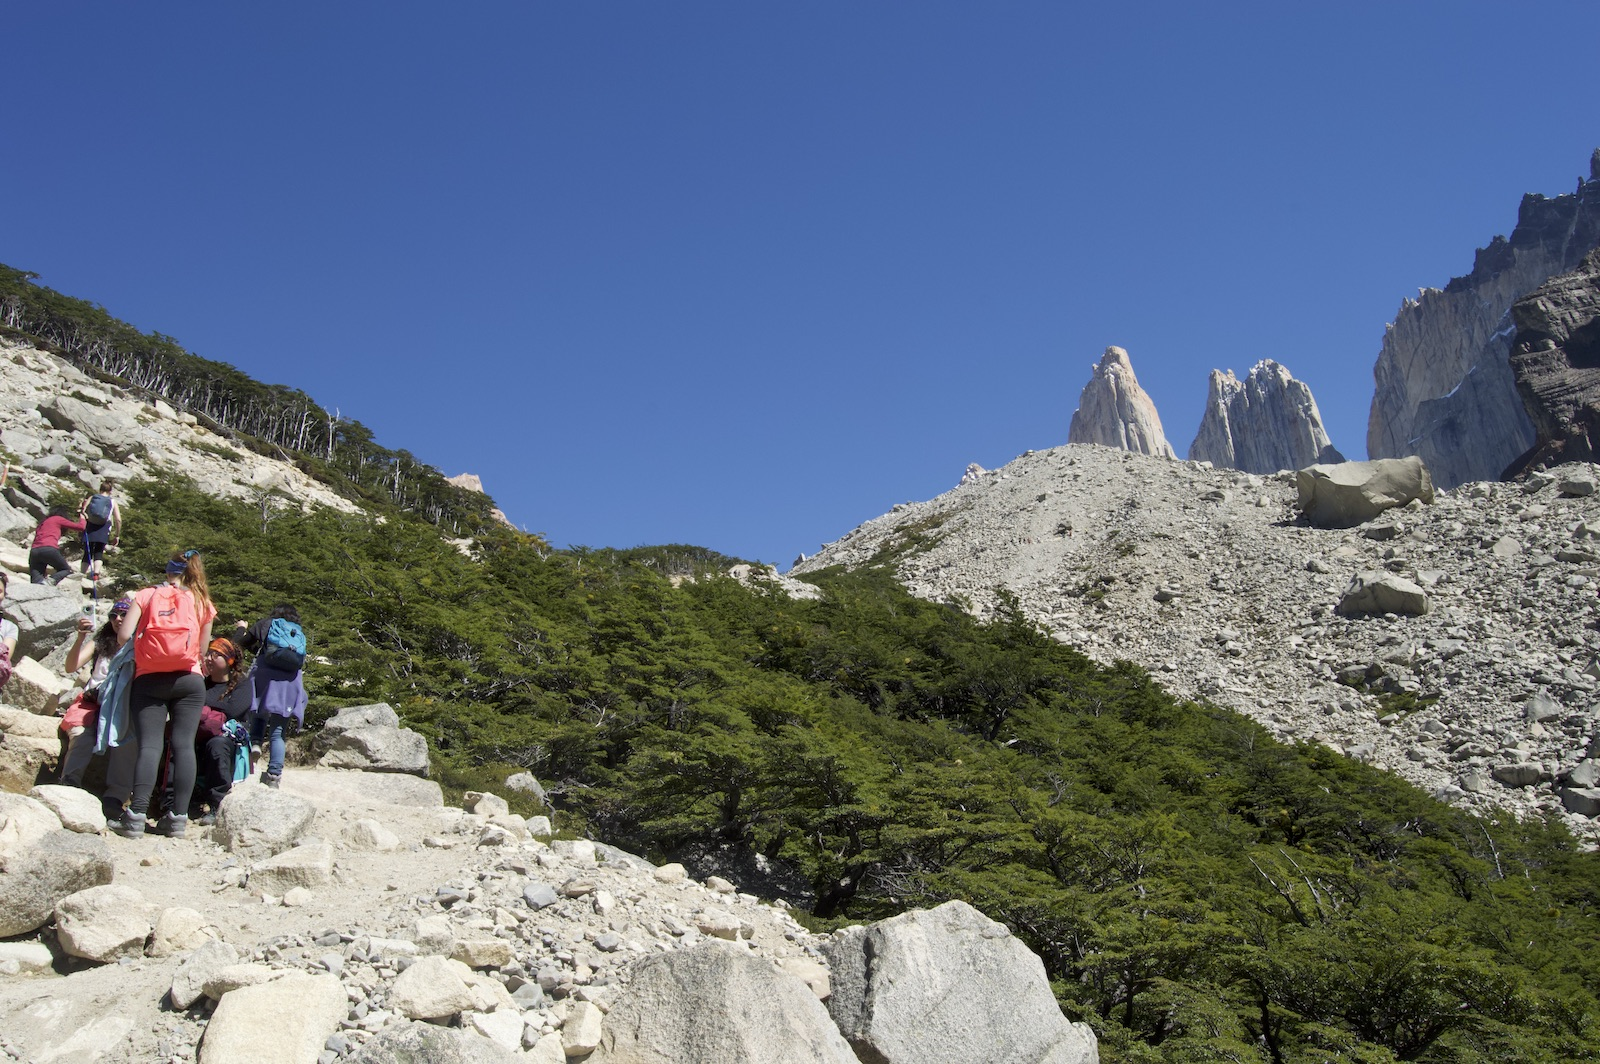 Hiking in Torres del Paine, Patagonia Hiking Guide: Day Hikes in Torres del Paine